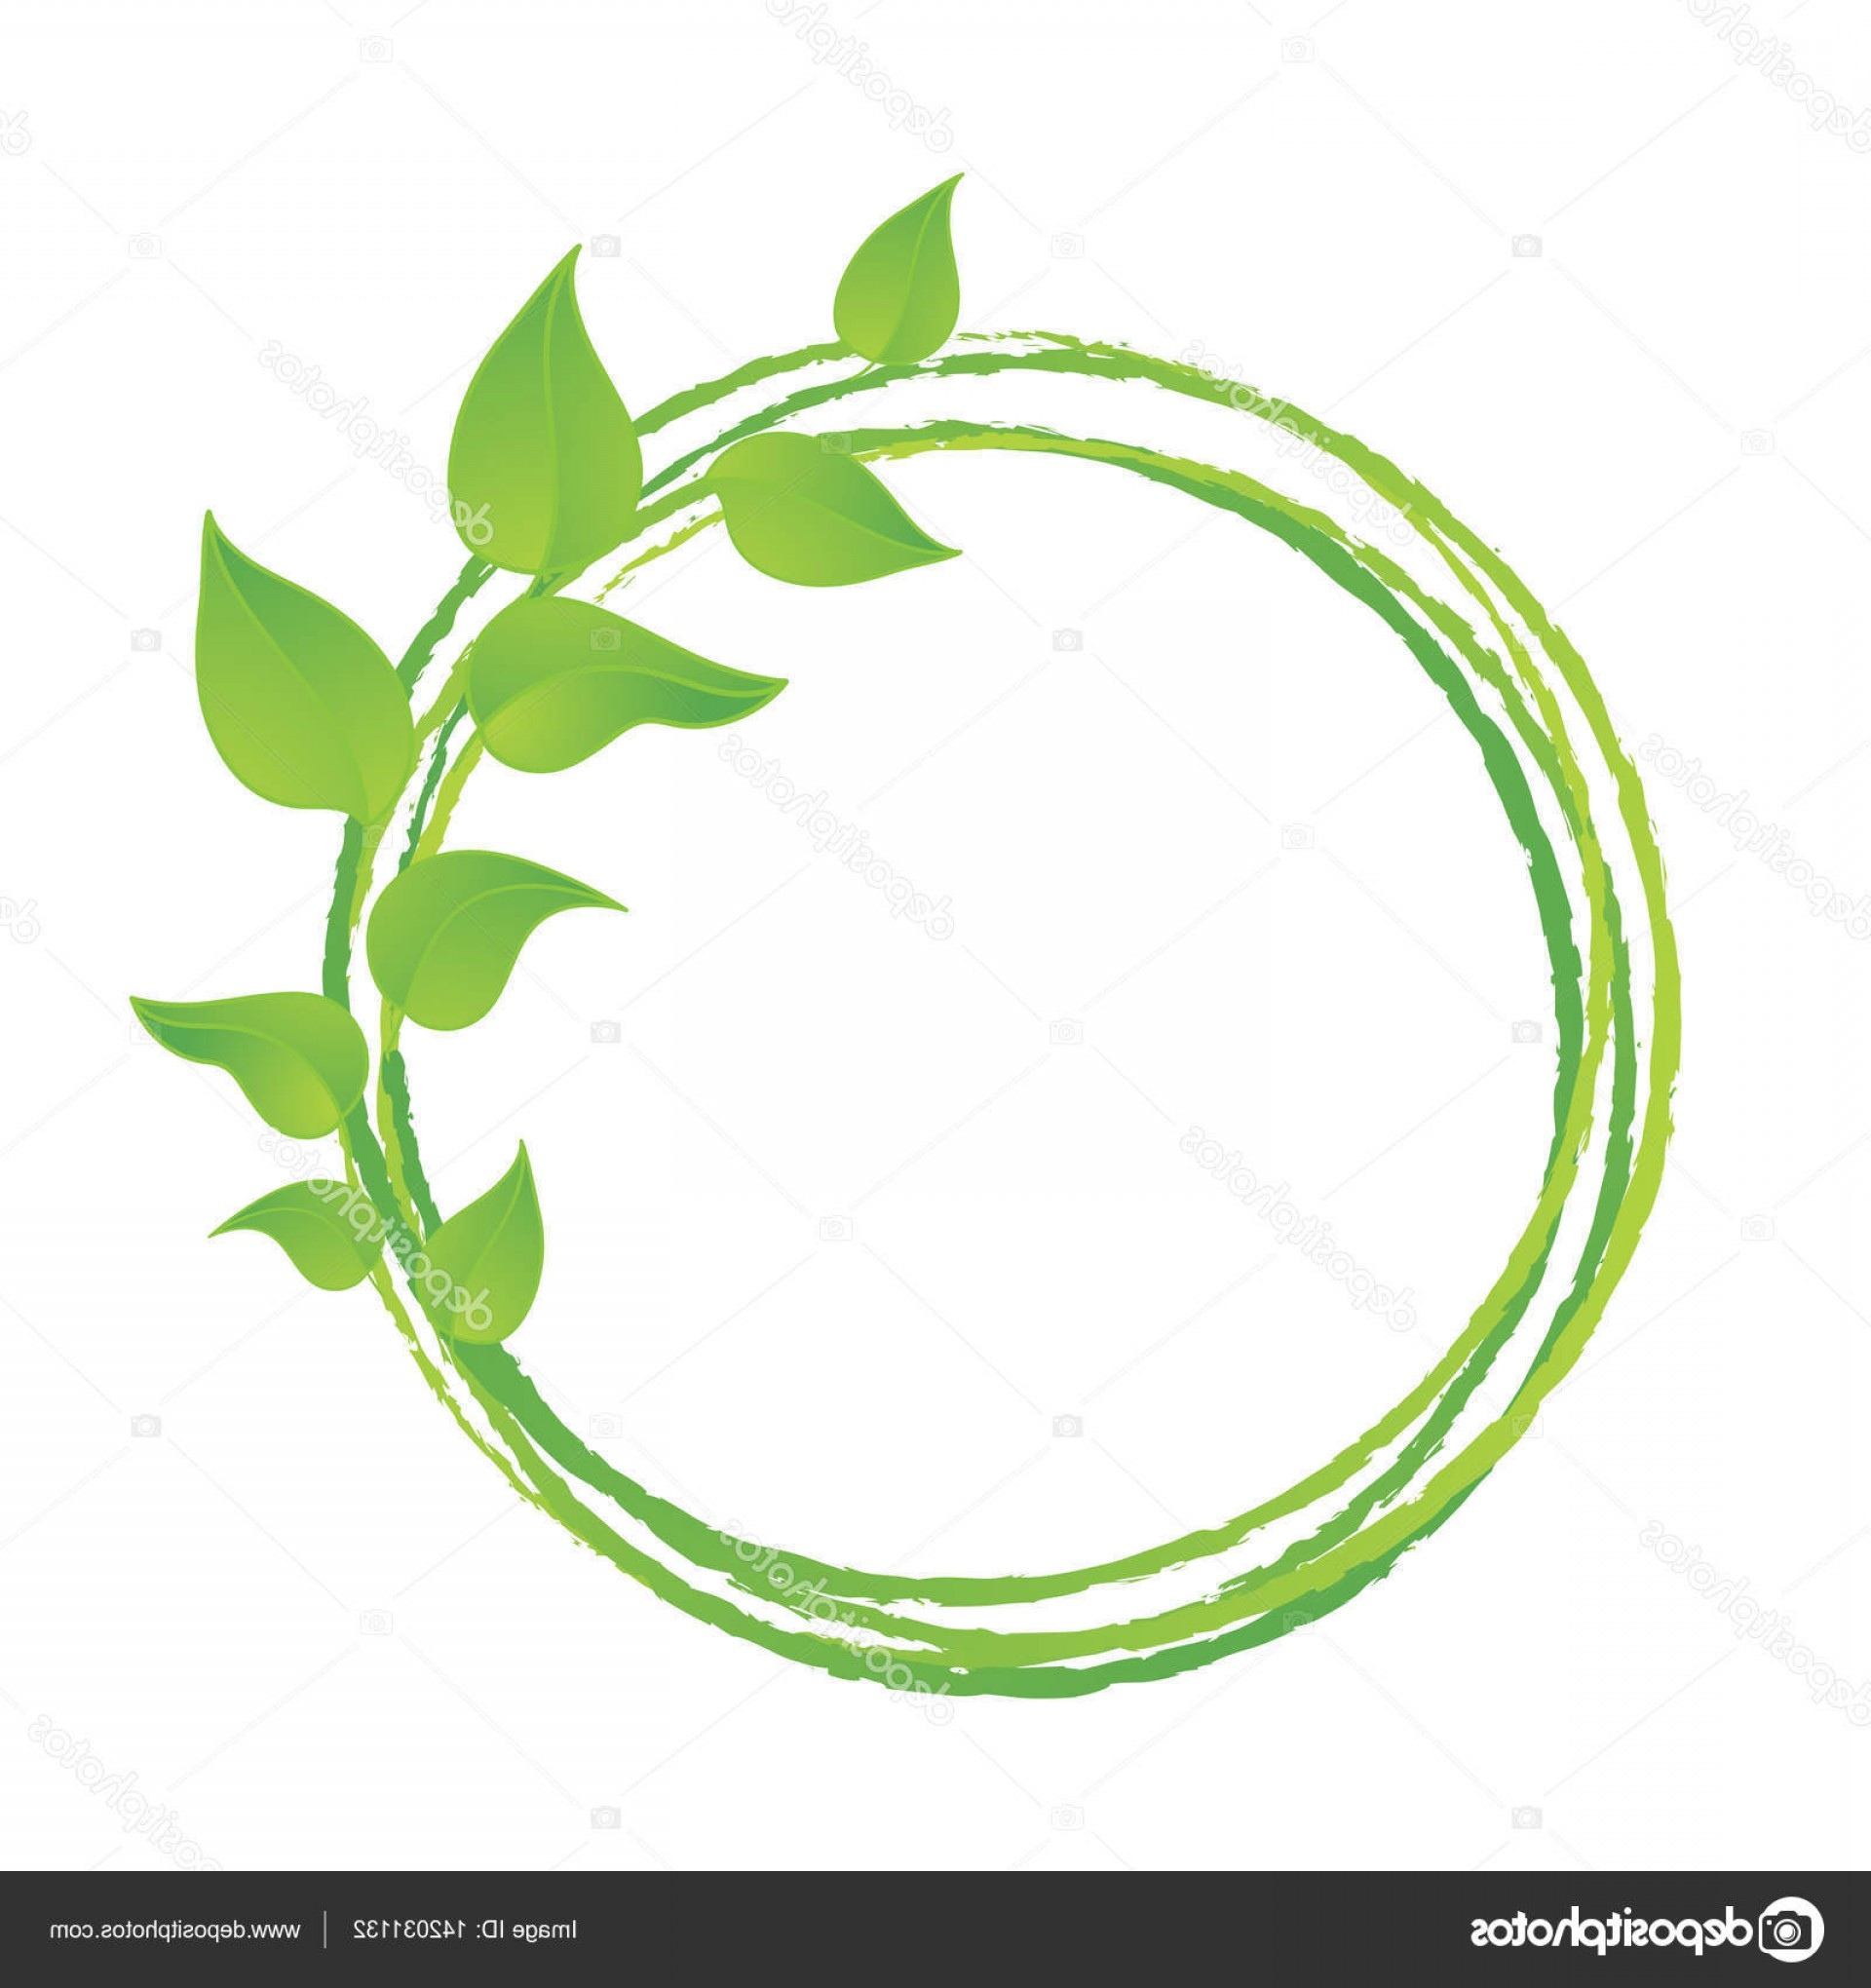 Vector Leaf Graphicd: Stock Illustration Green Leaves Or Leaf Graphic